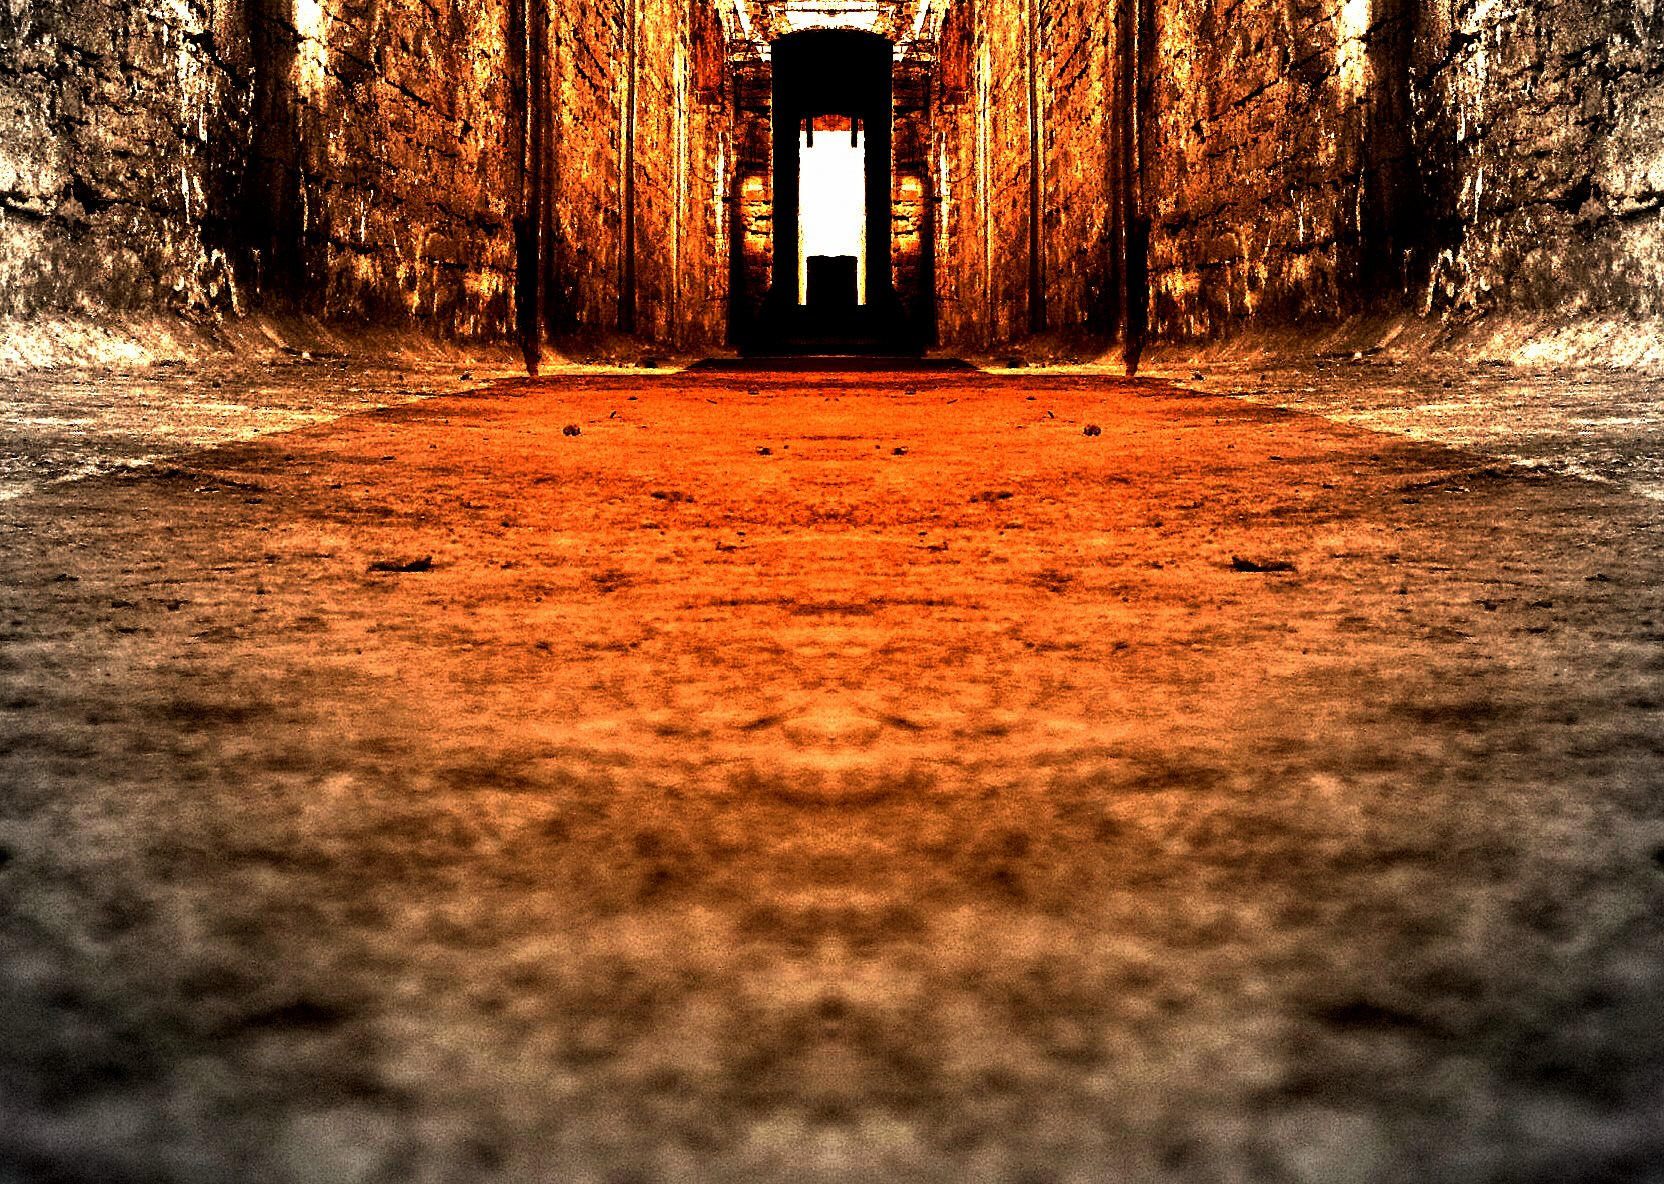 ... the door of hell by chicho21net & the door of hell by chicho21net on DeviantArt